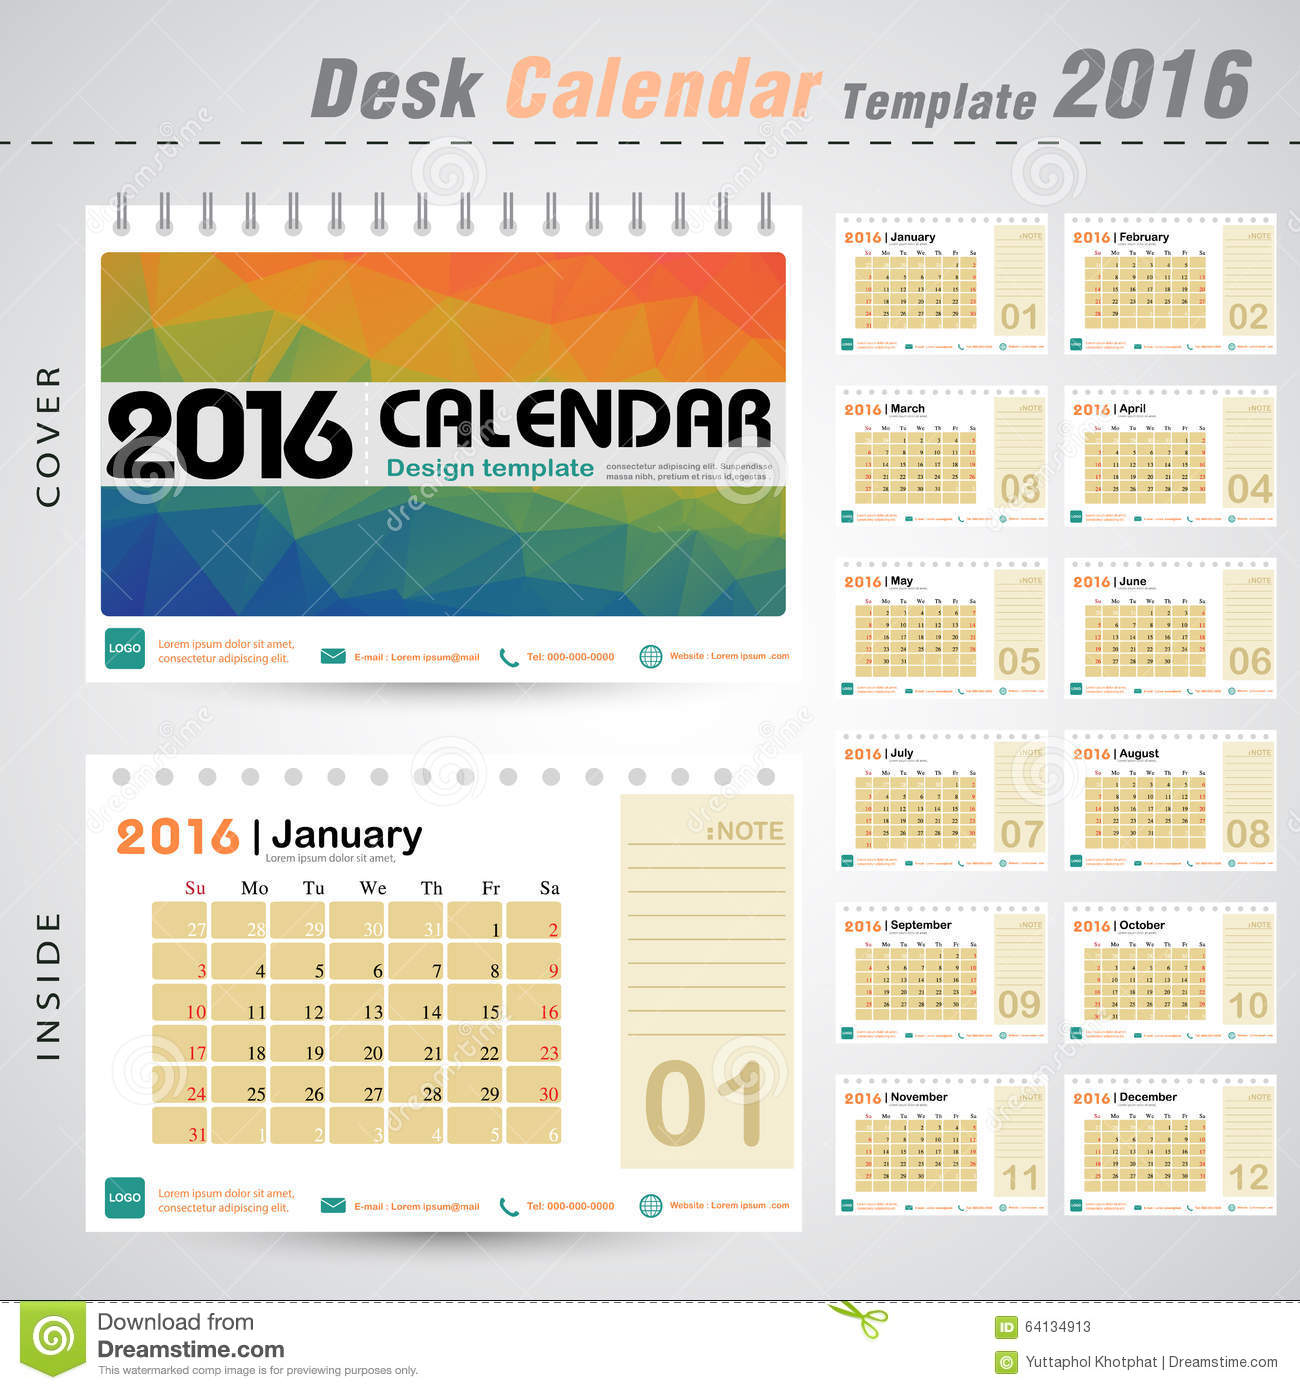 Corporate Calendar Template : Desk calendar vector design template with colorful